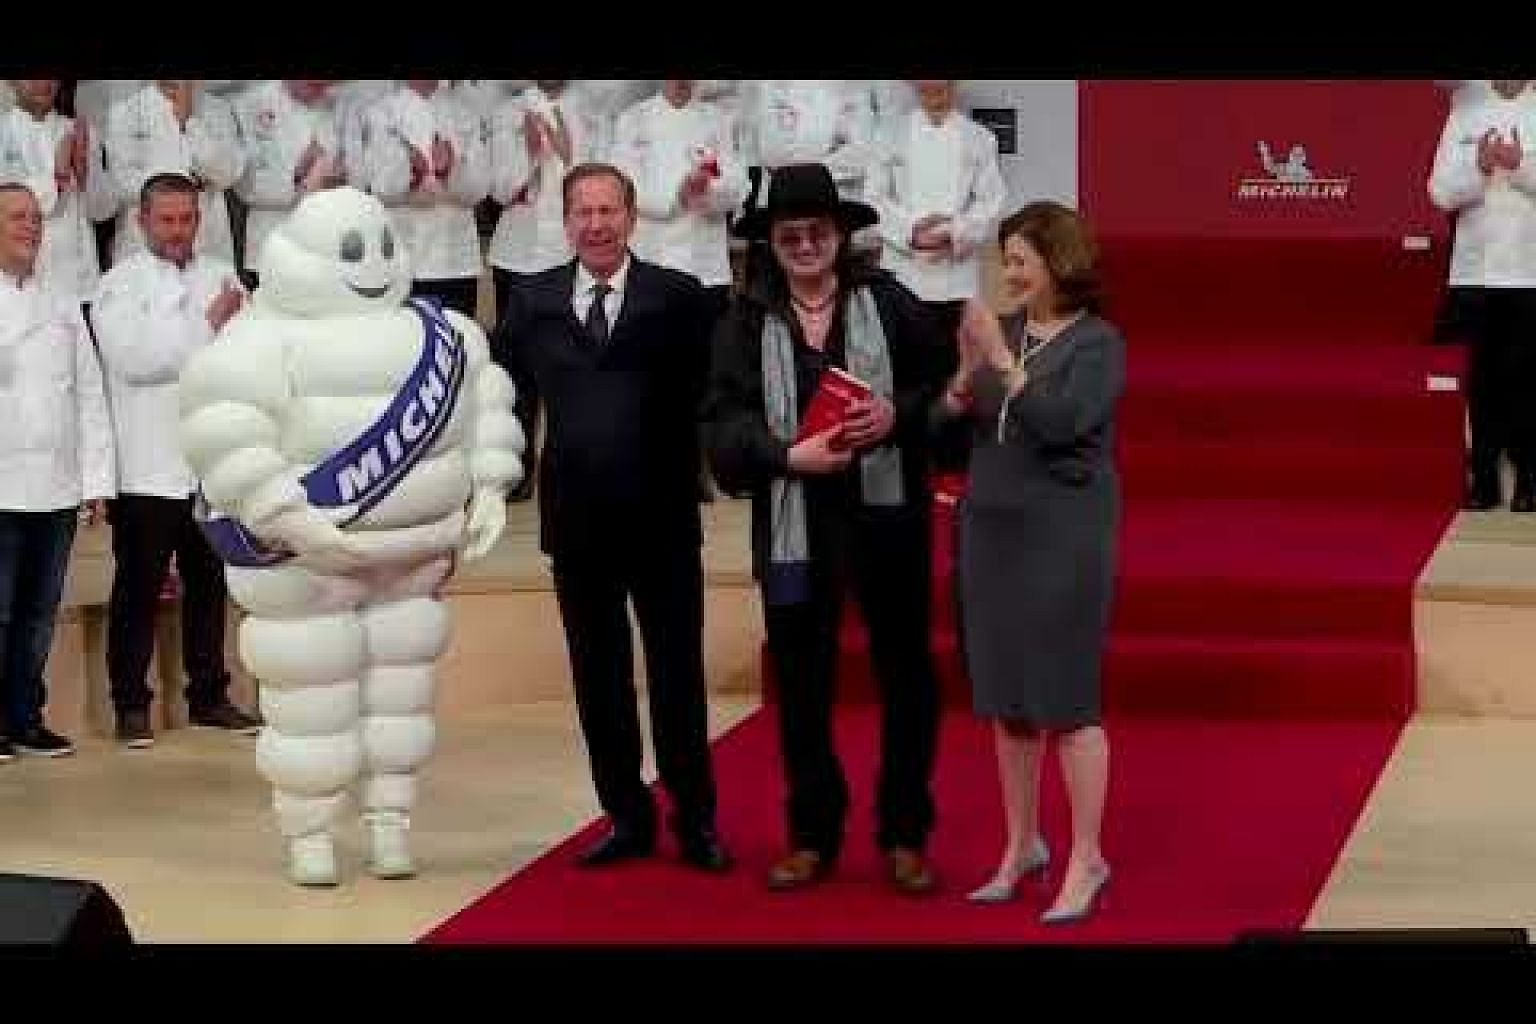 French chef sues Michelin guide over lost star